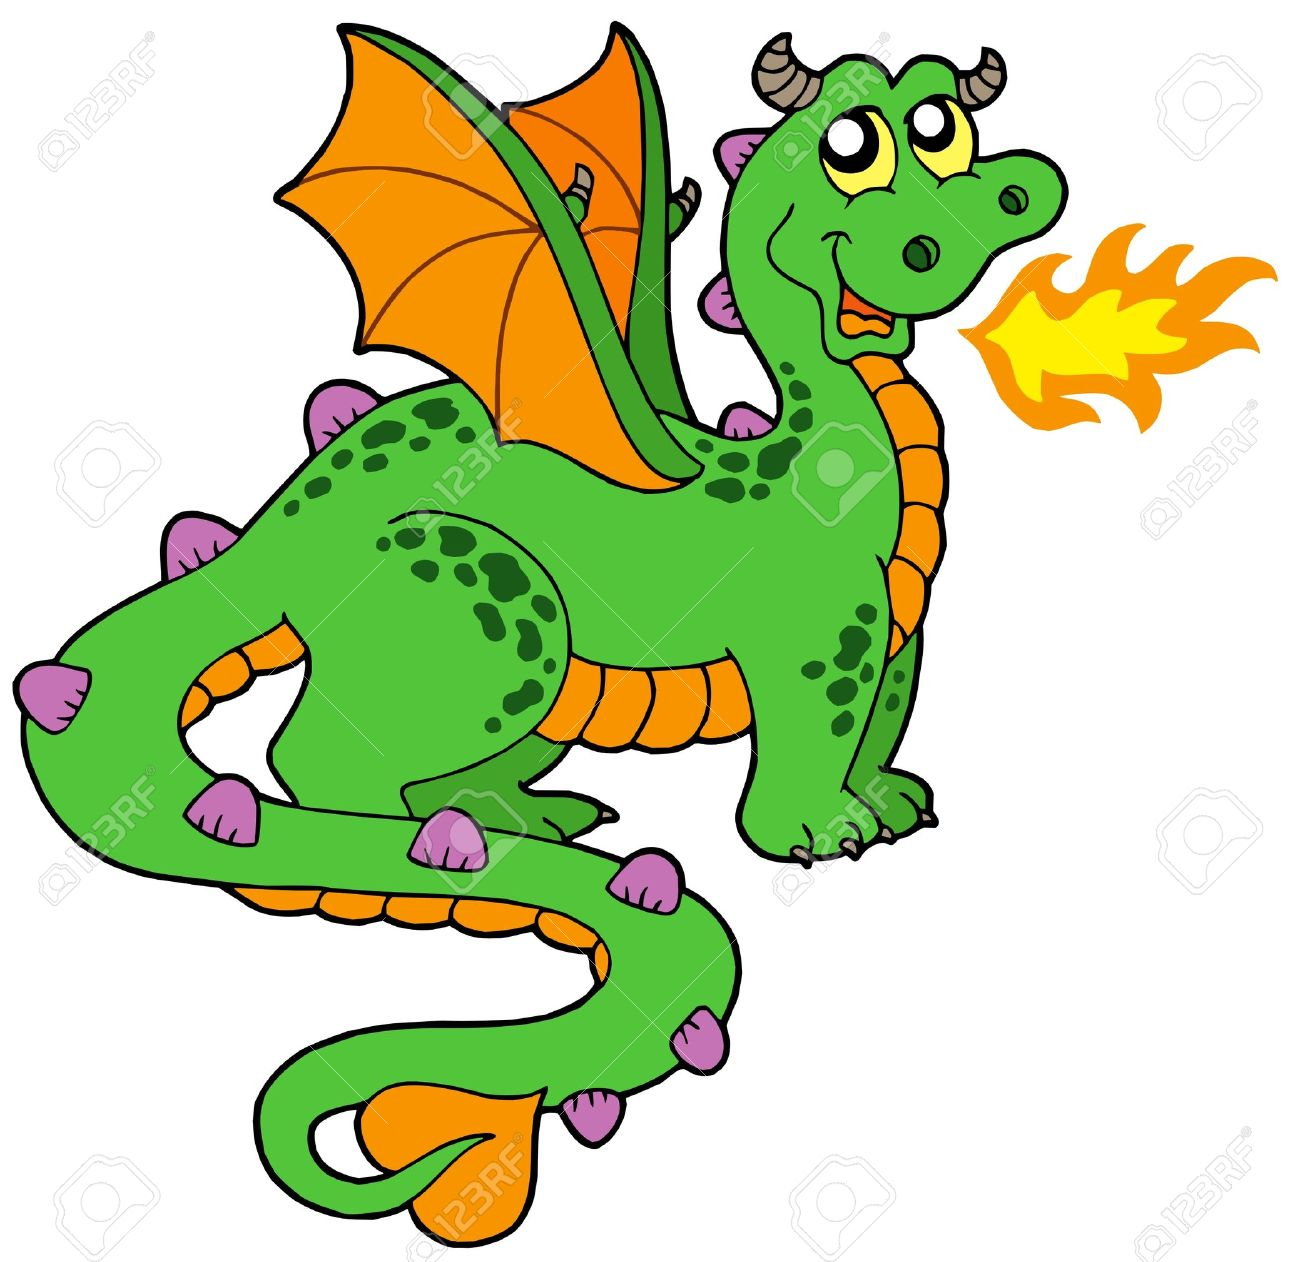 Pictures of Cartoon Dragons Breathing Fire Fire Breathing Dragon Cute